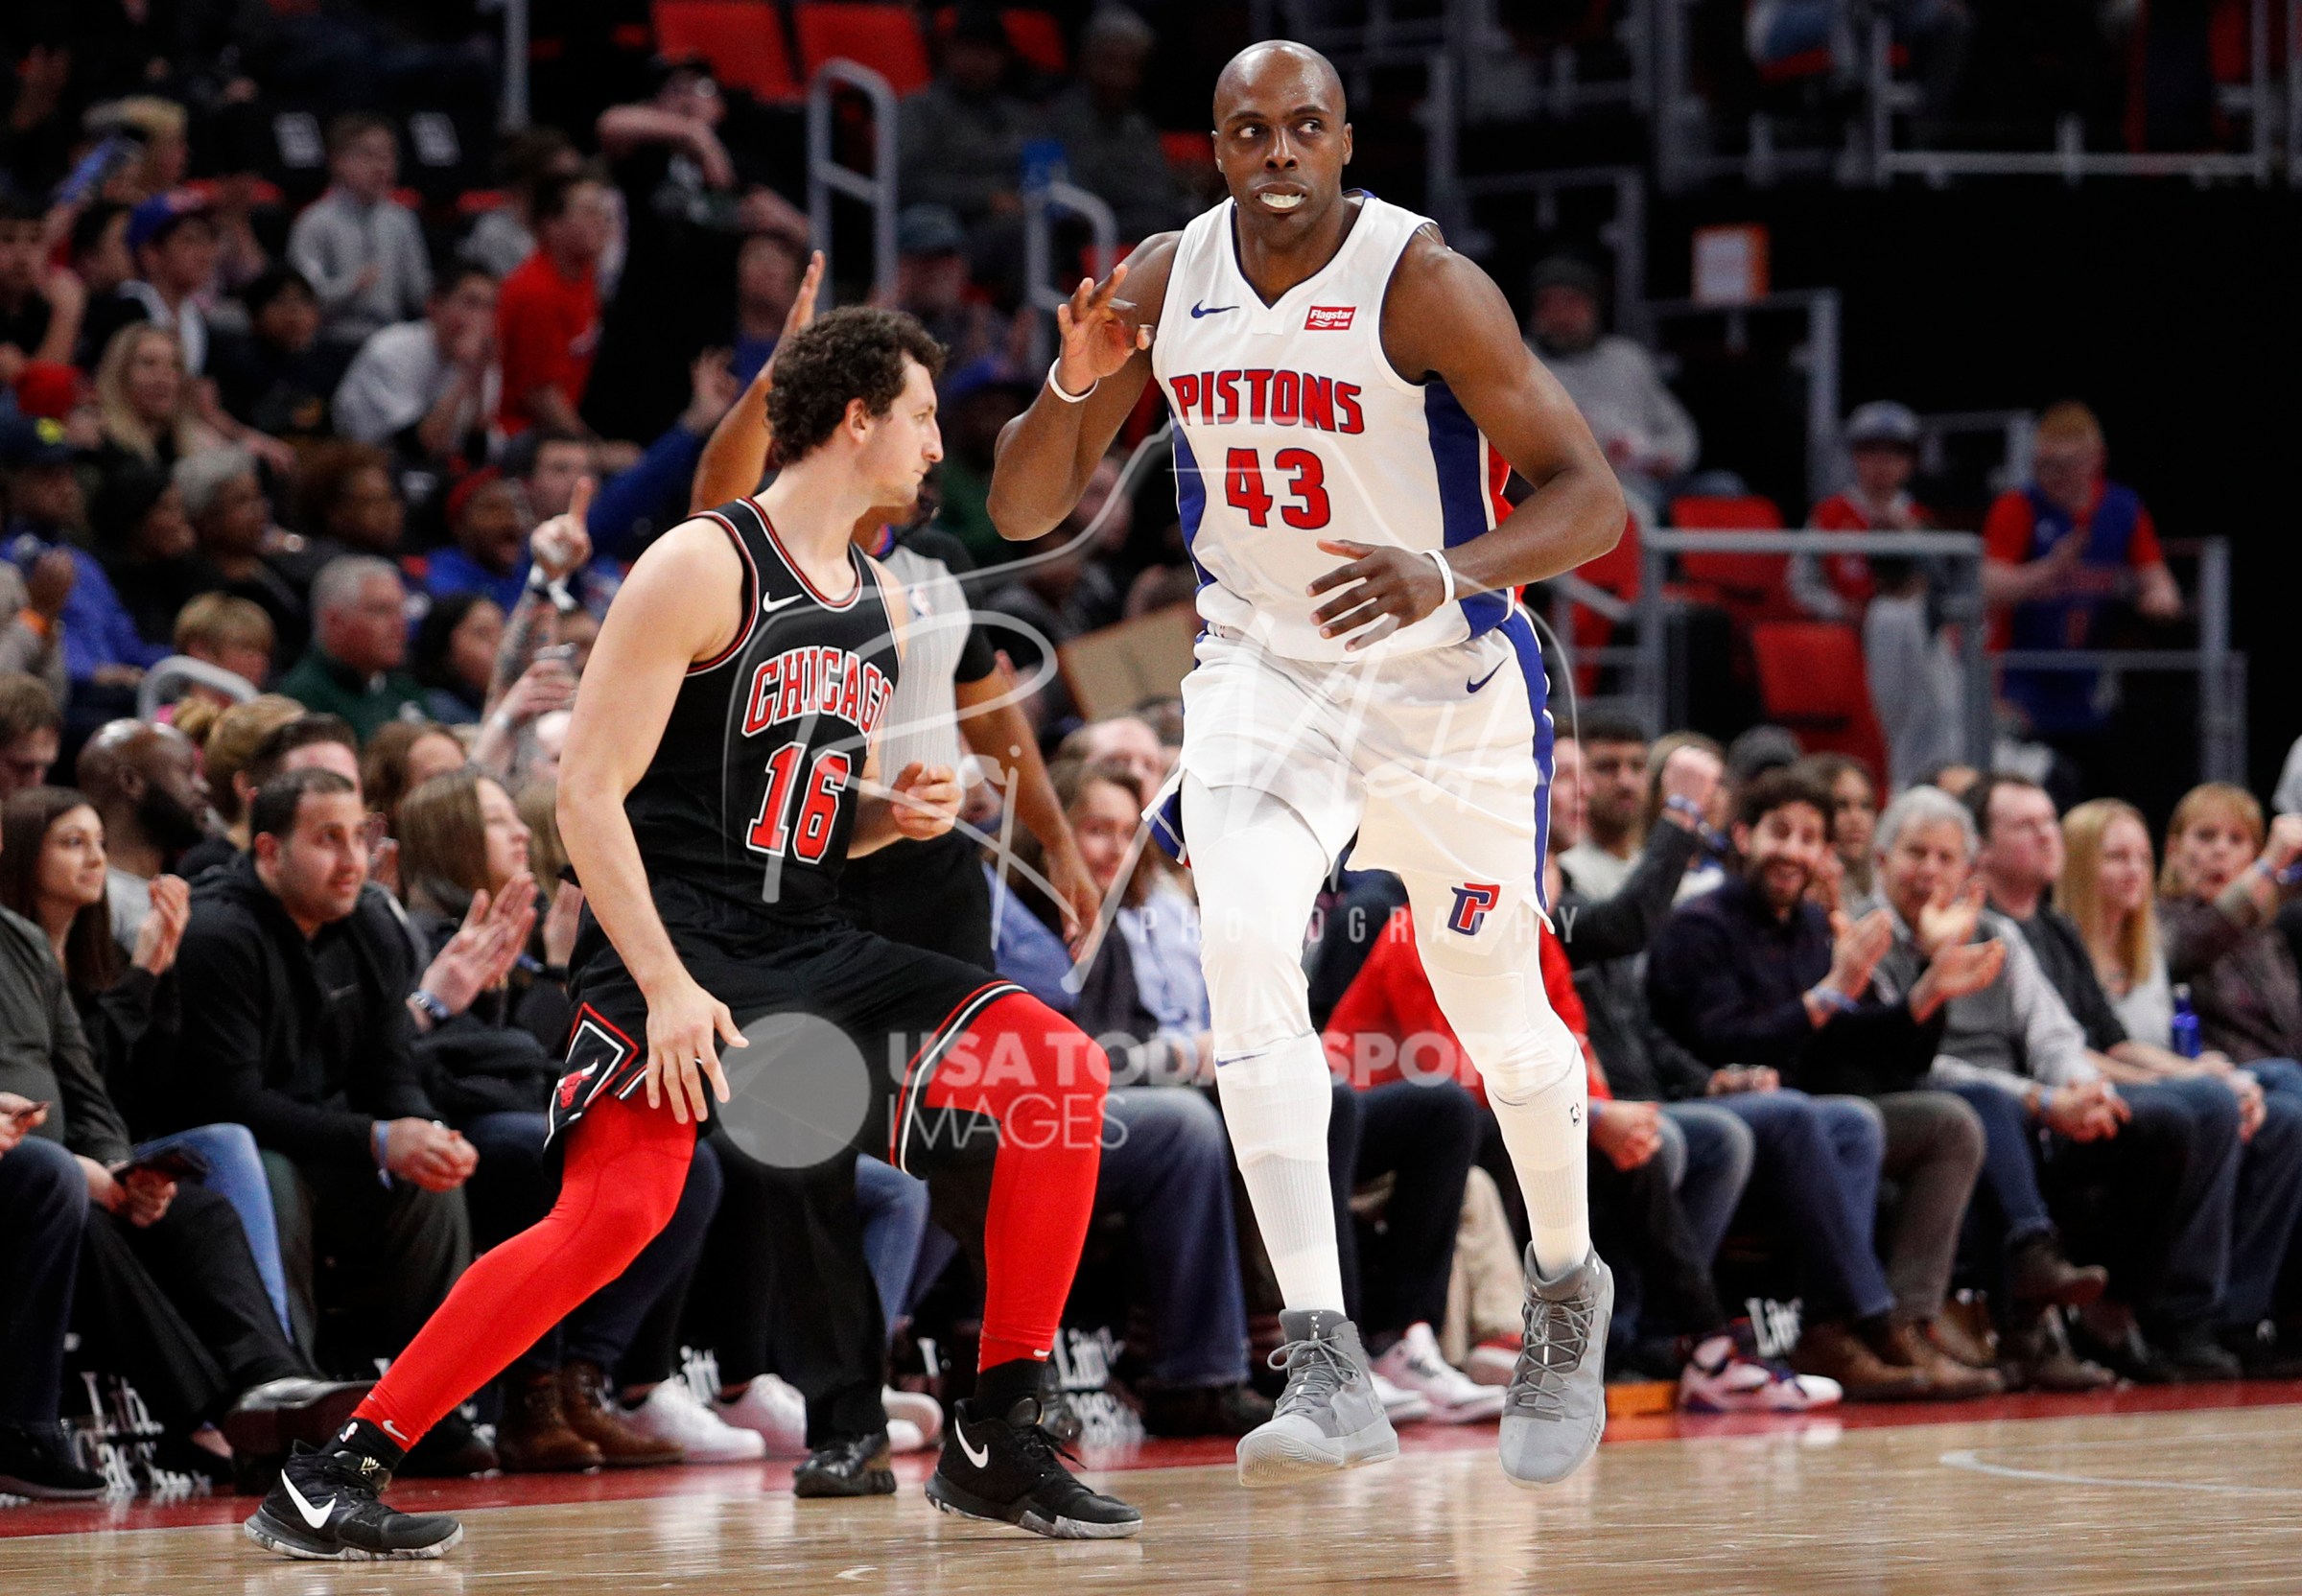 Mar 24, 2018; Detroit, MI, USA; Detroit Pistons forward Anthony Tolliver (43) signals three after making a basket during the third quarter against Chicago Bulls forward Paul Zipser (16) at Little Caesars Arena. Mandatory Credit: Raj Mehta-USA TODAY Sports